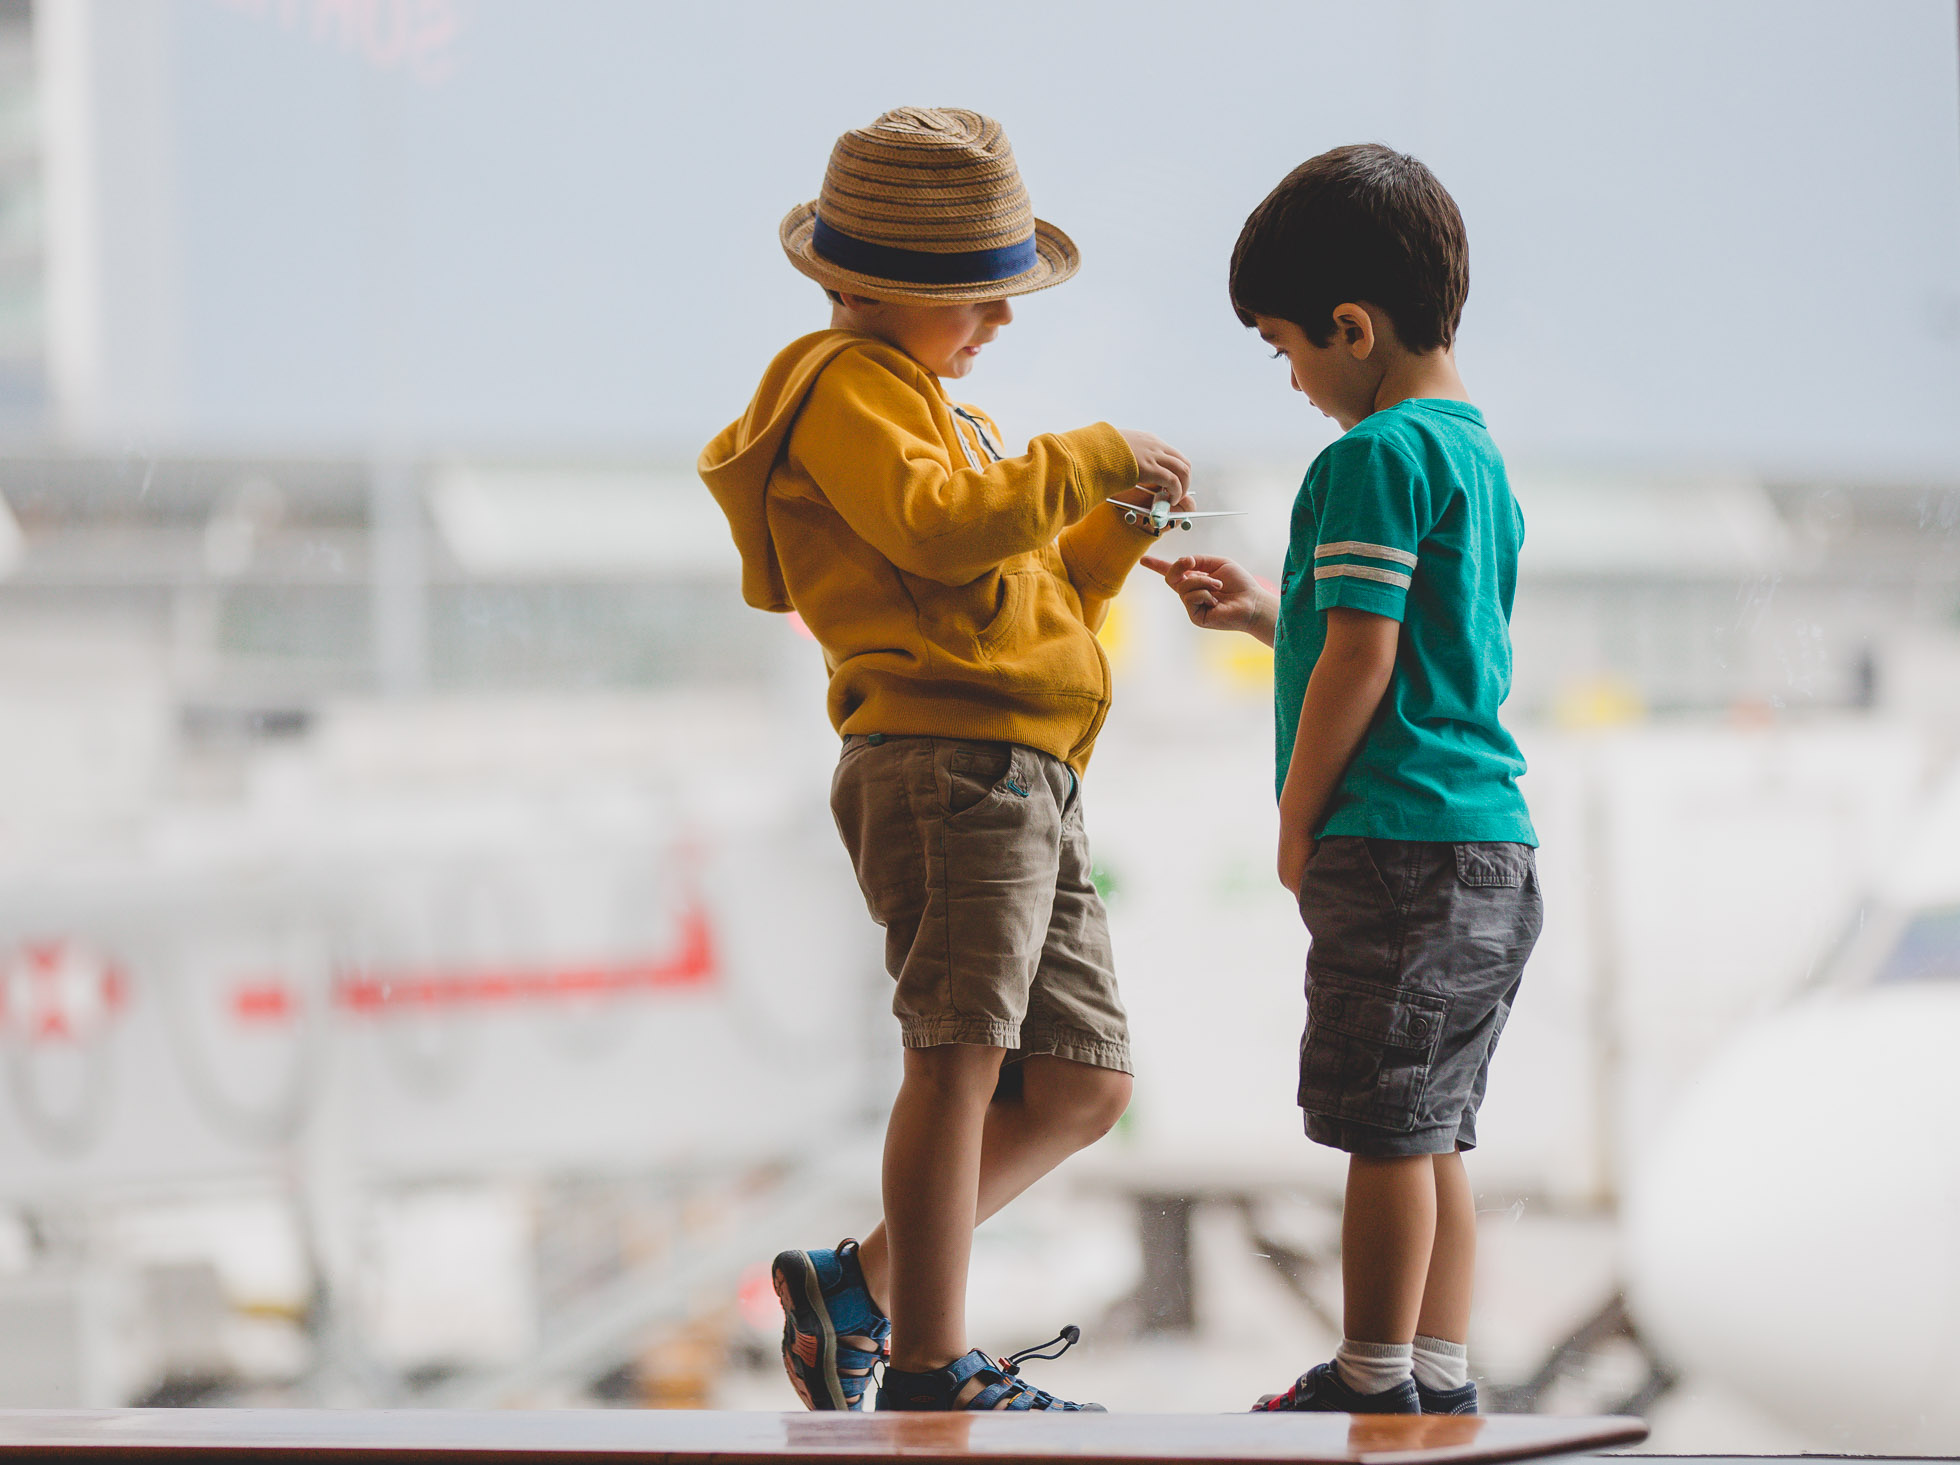 Two boys playing with a toy plane at the airport by Tami Keehn